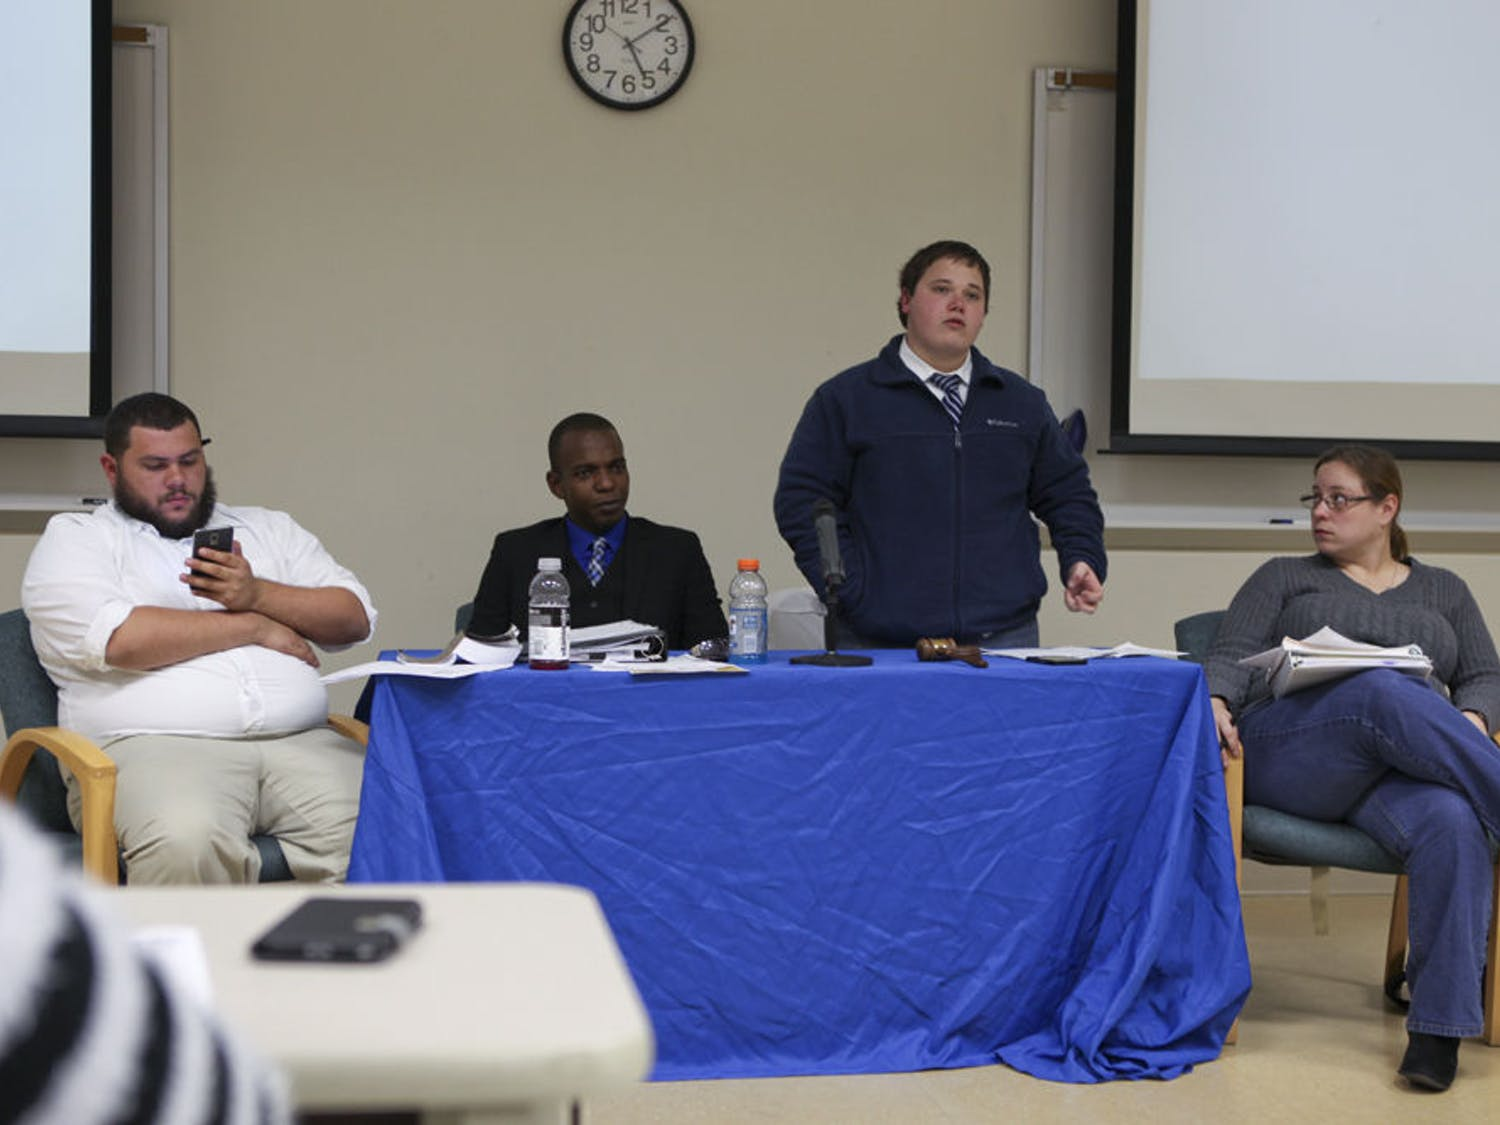 From left, SFC SG parliamentarian Andy Alvarez, Student Senate President Jeremy Pierce, Senate Pro Tempore Dalton King and Senate Secretary Kelly Cooper preside over Pierce's impeachment along with other issues, at the SFC Student Senate meeting Wednesday.